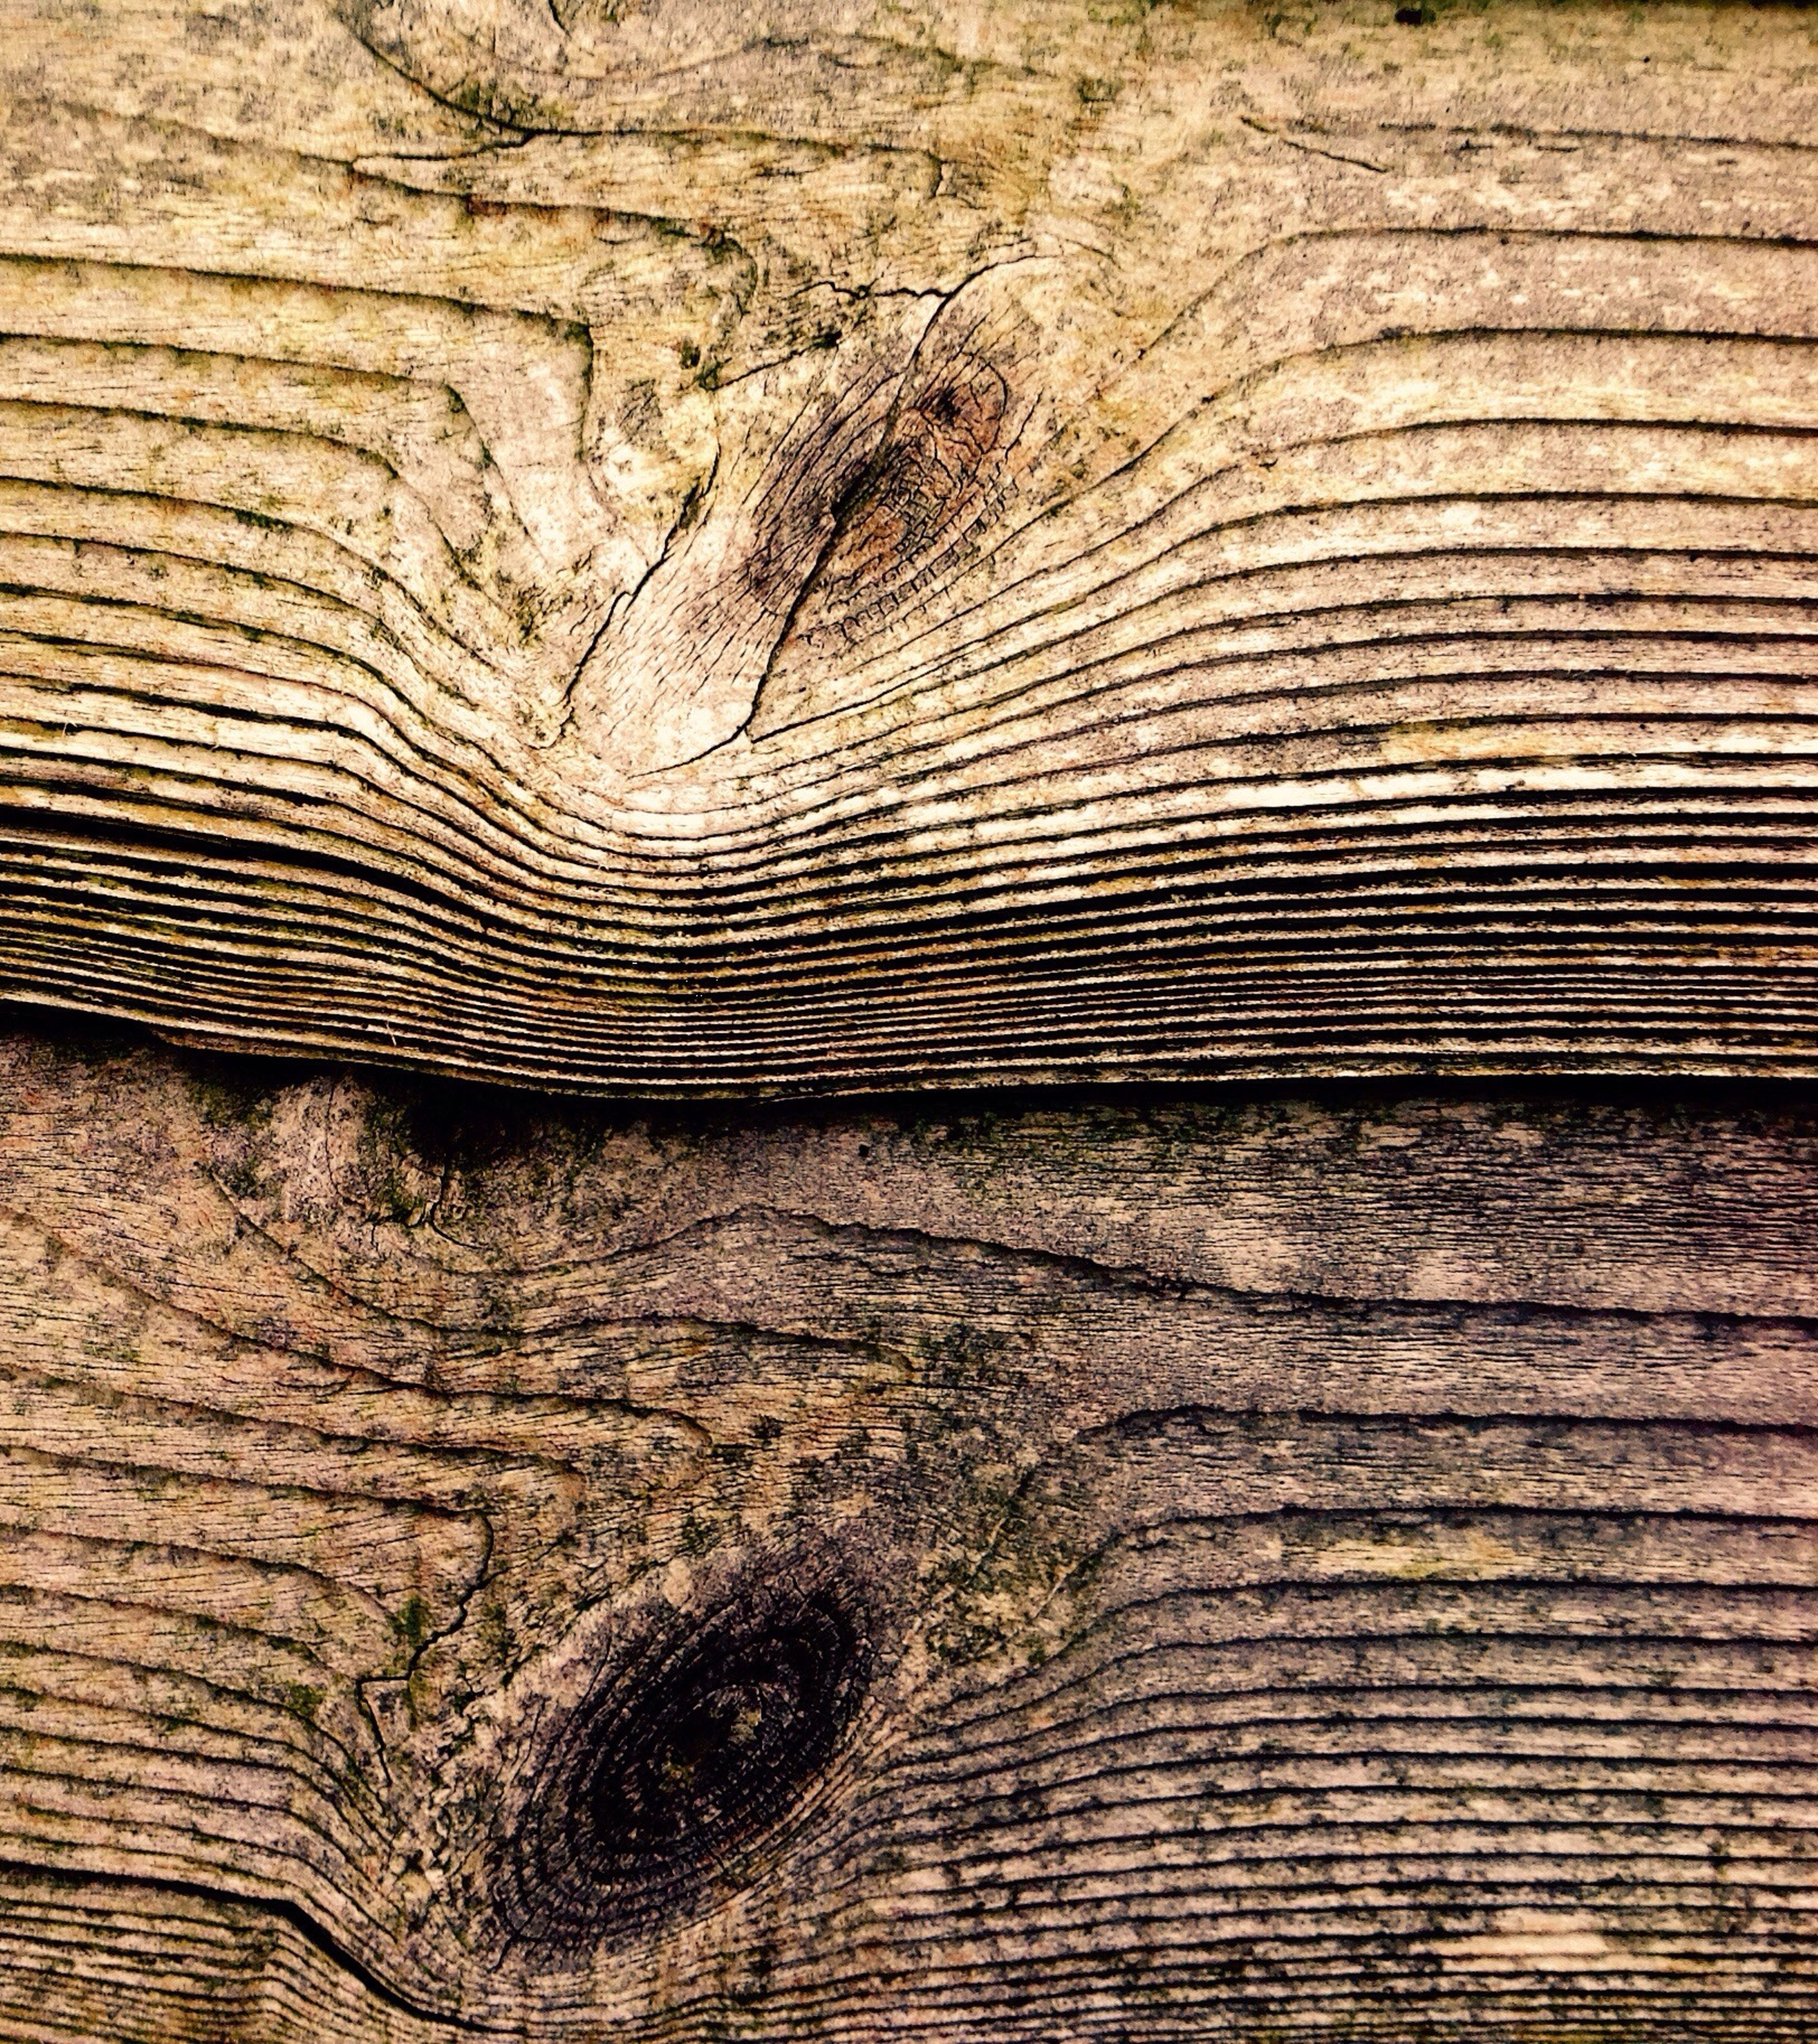 textured, wood - material, pattern, full frame, backgrounds, close-up, wood, wooden, plank, natural pattern, rough, brown, detail, cracked, outdoors, no people, day, log, weathered, old